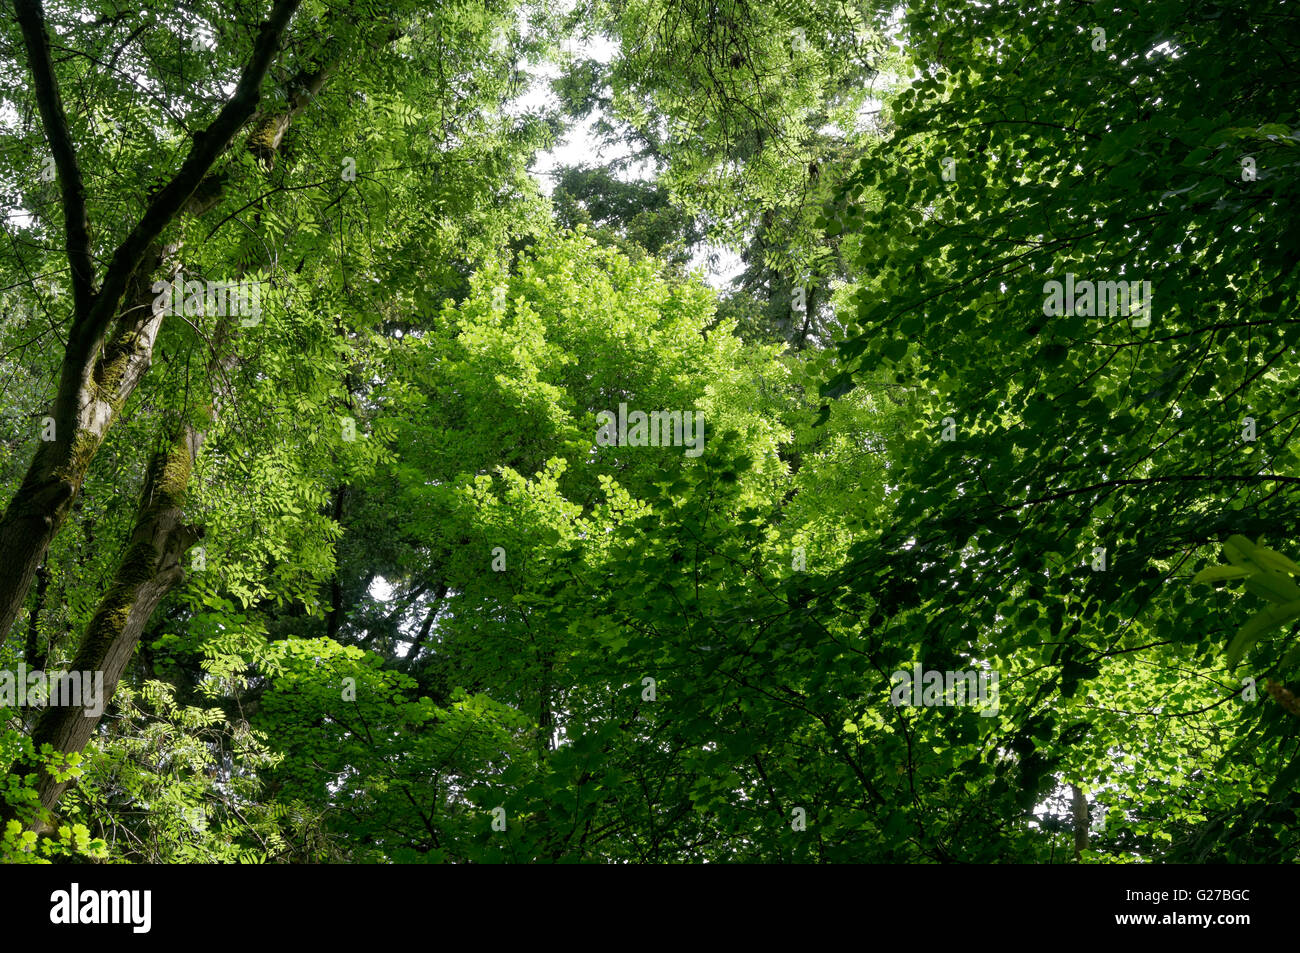 looking-up-into-the-green-canopy-of-a-te